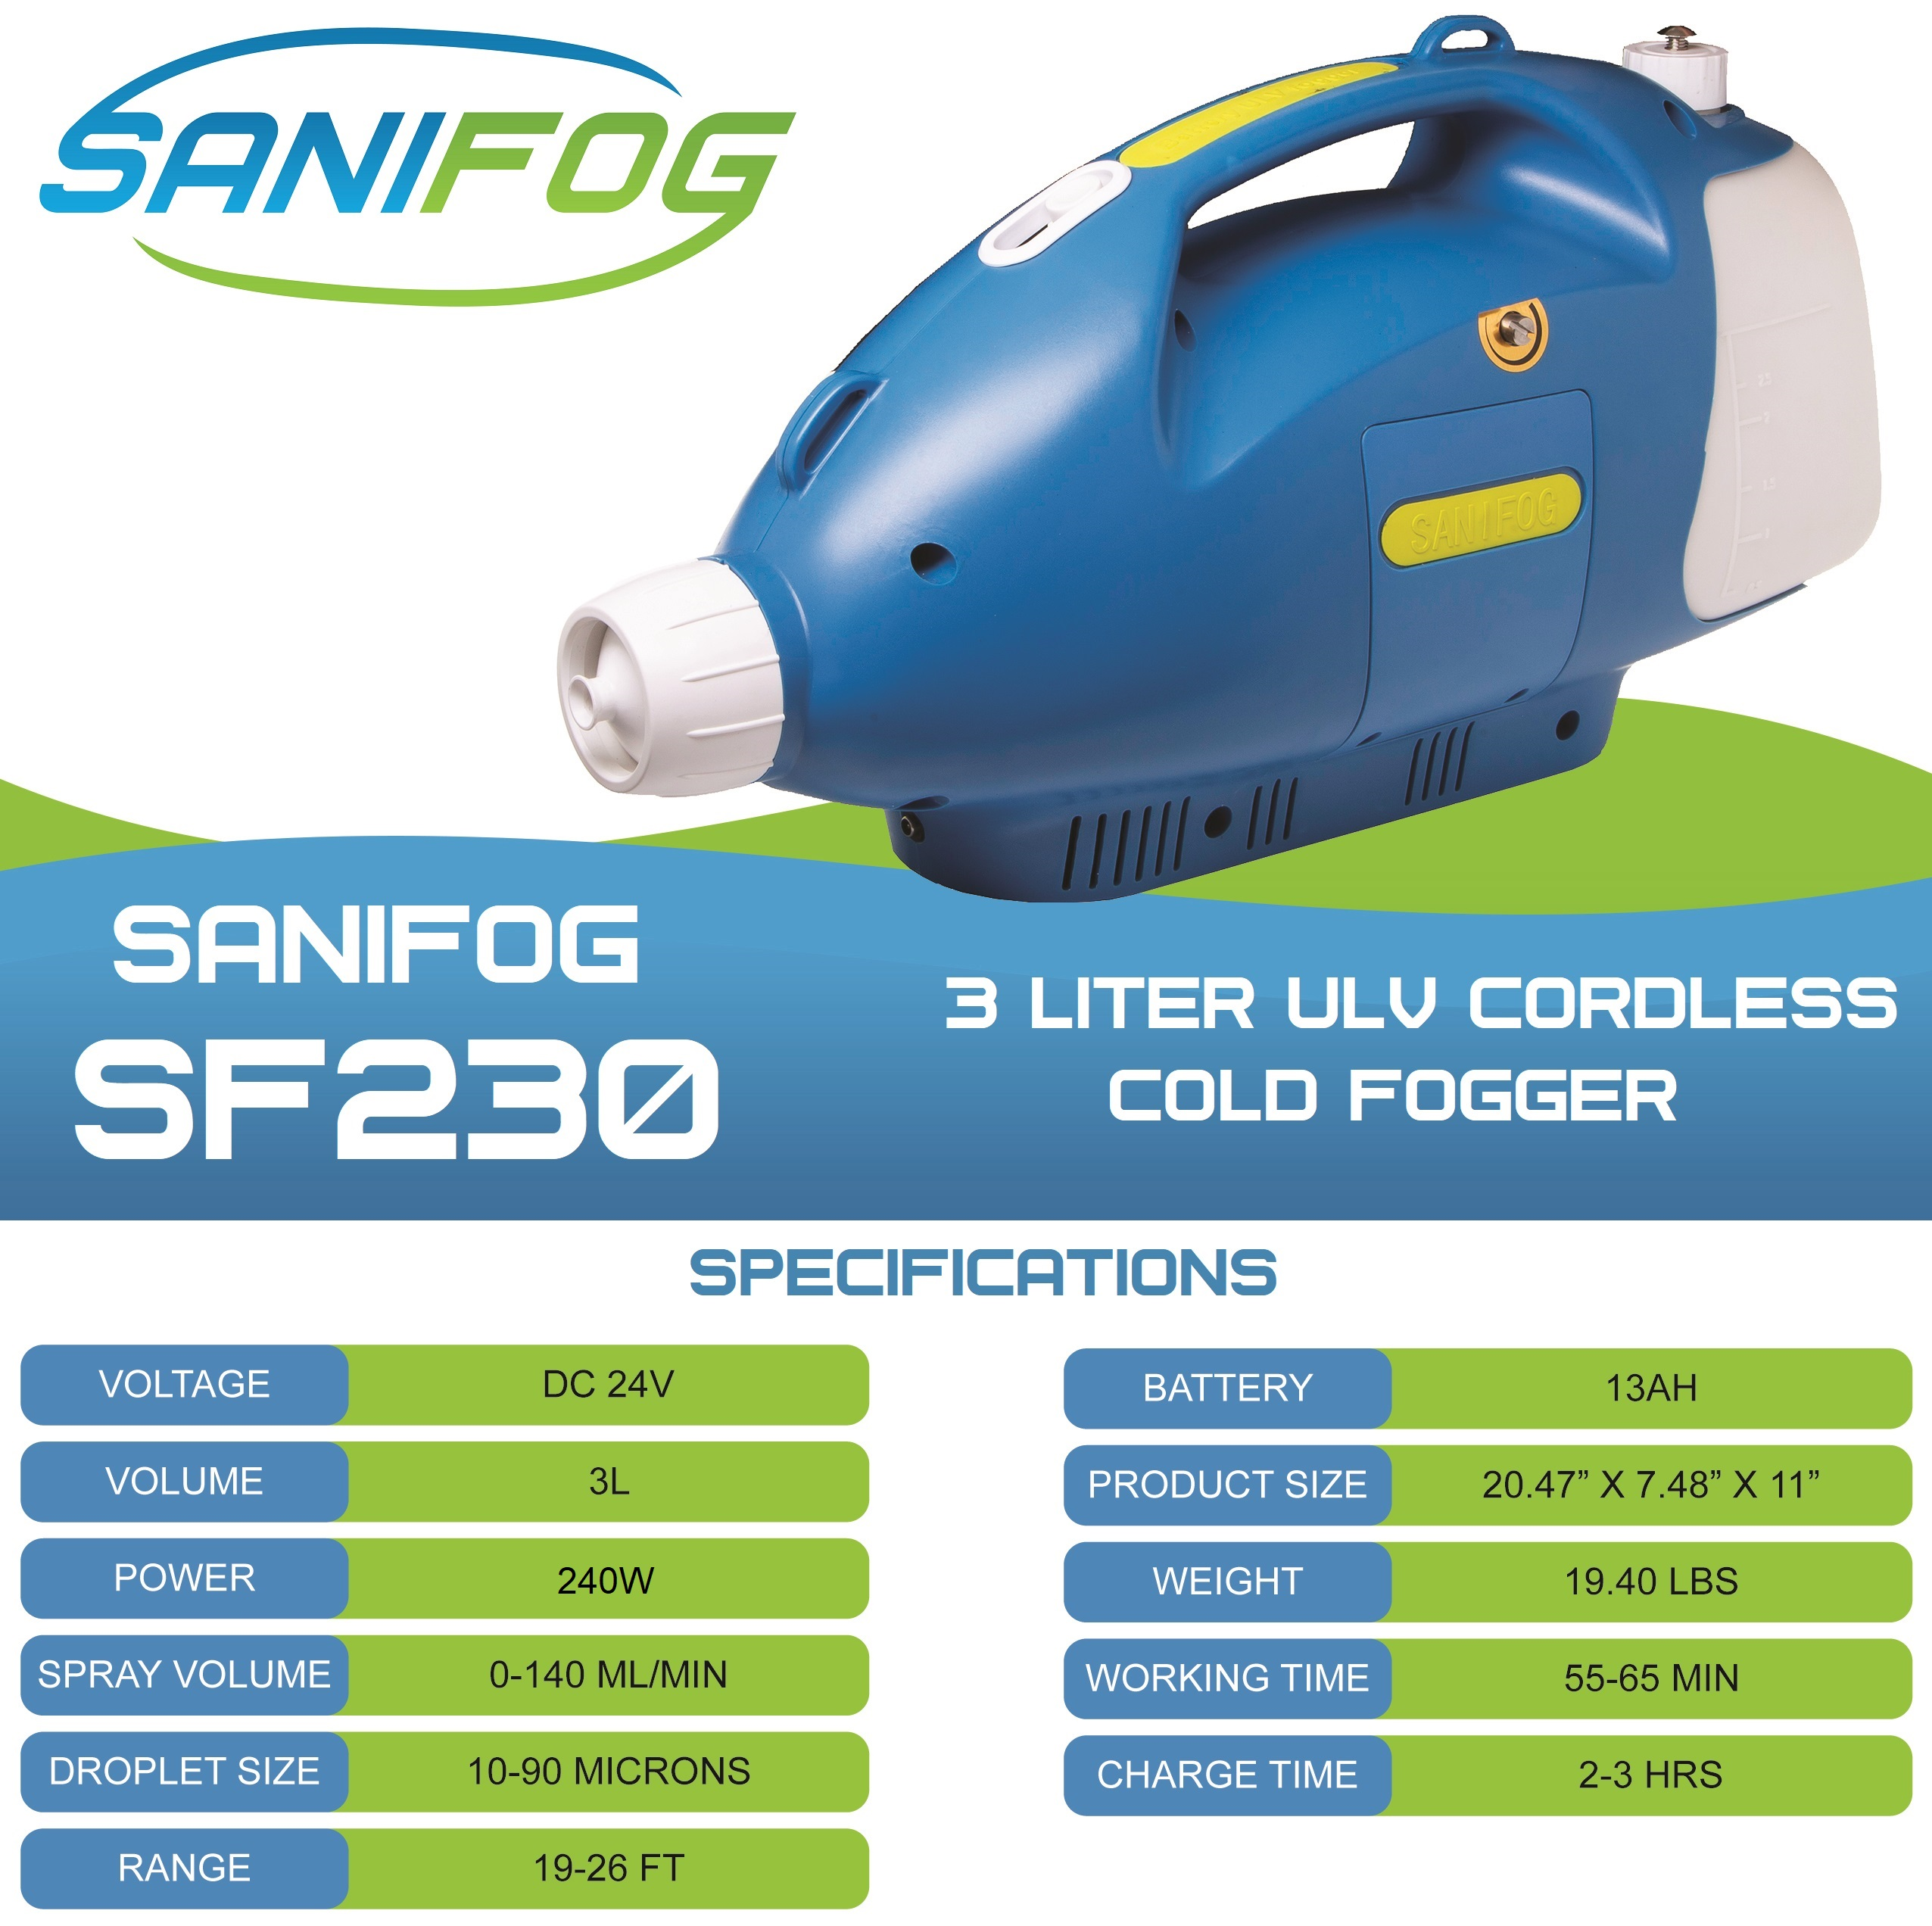 3.0 L CORDLESS ULV COLD FOGGER BATTERY SANIFOG DISINFECTANT SPRAYER  WITH STARTER TABLETS (COMMERCIAL OR RESIDENTIAL)